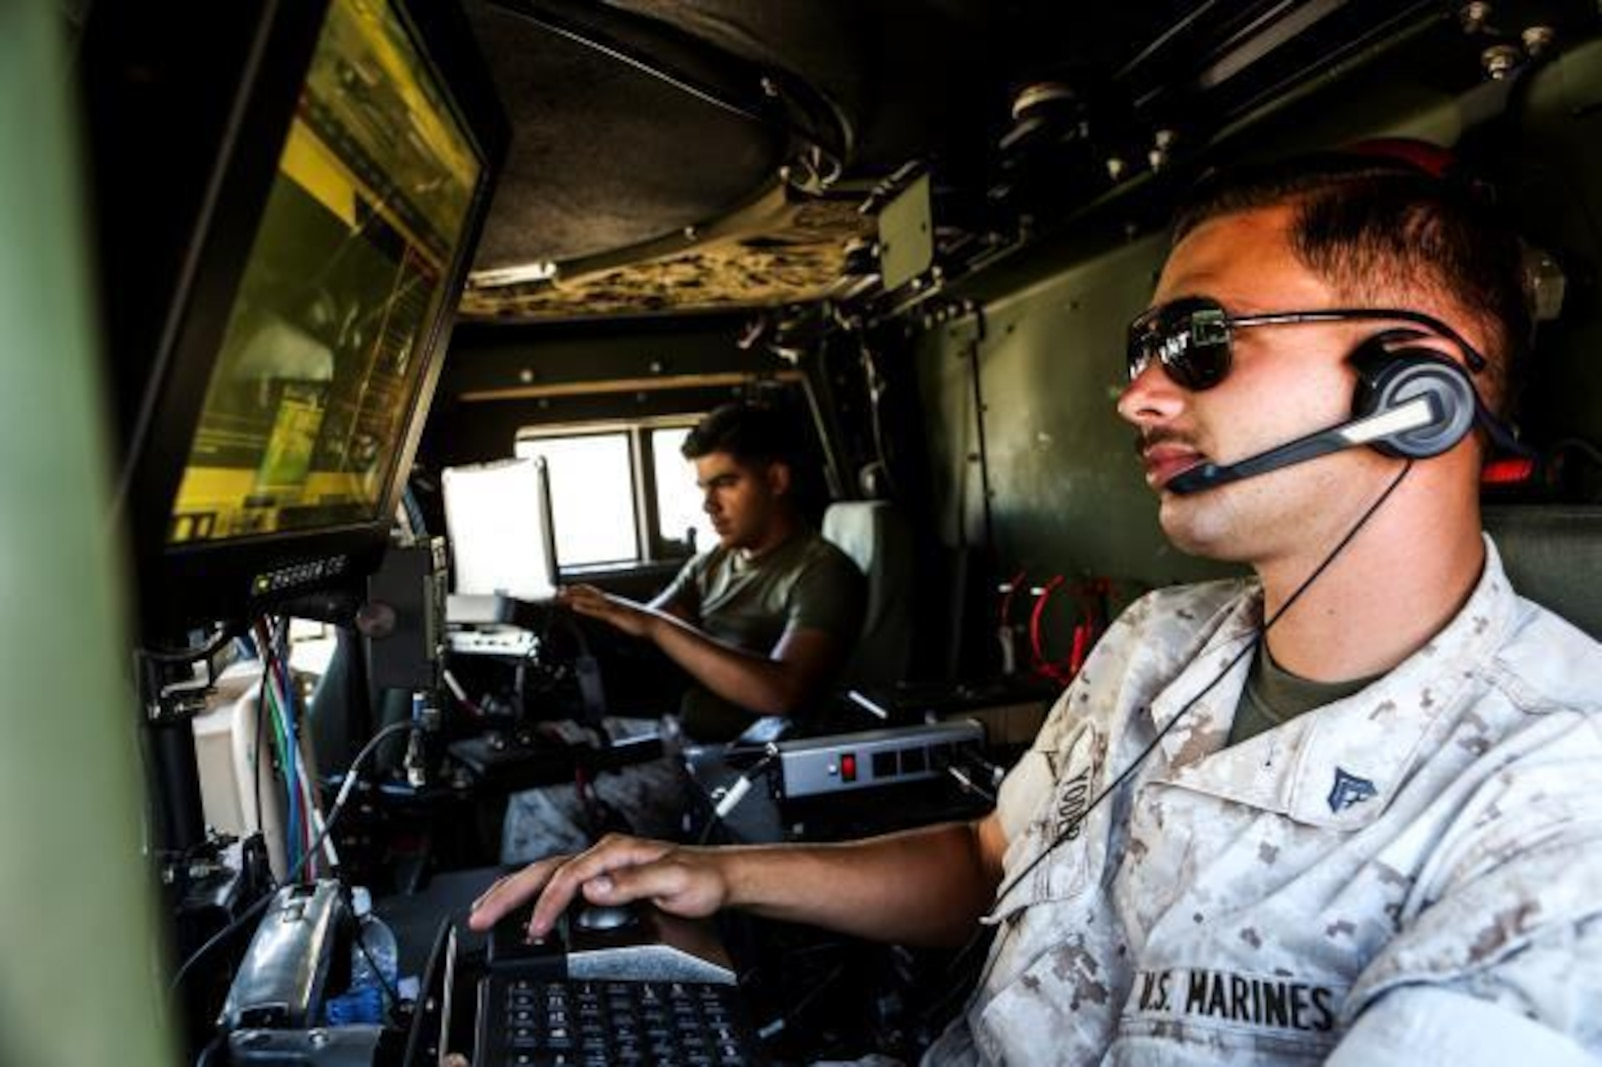 U.S. Marine Cpl. James Yoder conducts radio checks during Command Post Exercise 3 aboard Camp Pendleton, Calif., June 28, 2016. Yoder is a technical controller with Communications Company, Headquarters Regiment, 1st Marine Logistics Group. During the exercise, Marines with Communications Company proved they could communicate not only within their own subordinate and adjacent units, but also 3rd Marine Air Craft Wing, 1st Marine Division, and I Marine Expeditionary Force. (U.S. Marine Corps photo by Sgt. Laura Gauna/ Released)